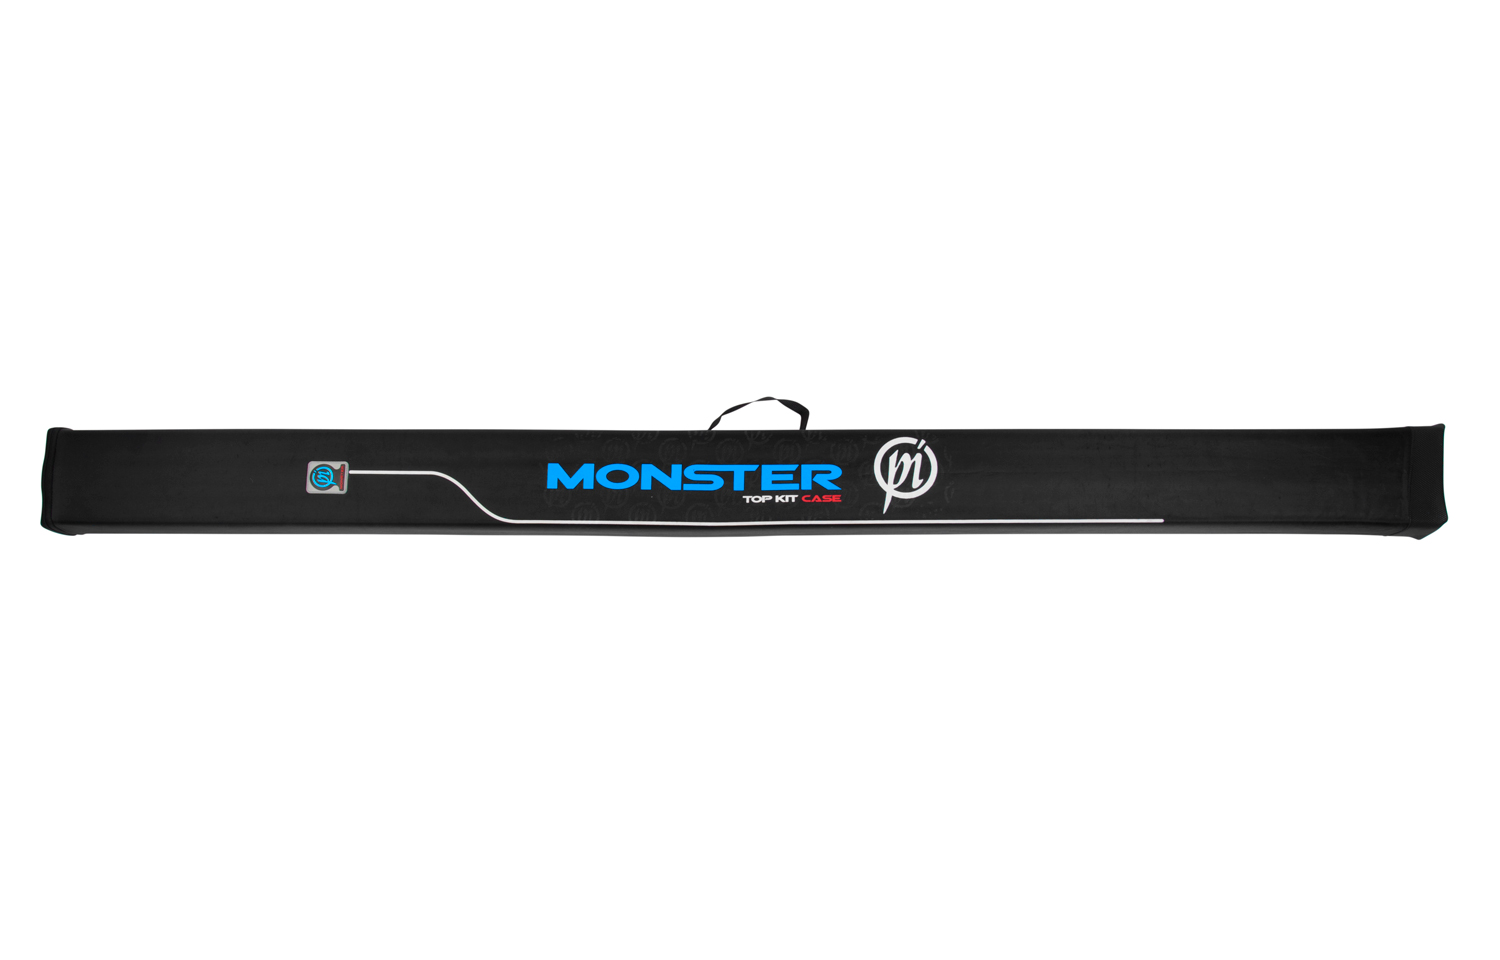 Preston Monster Top Kit Case